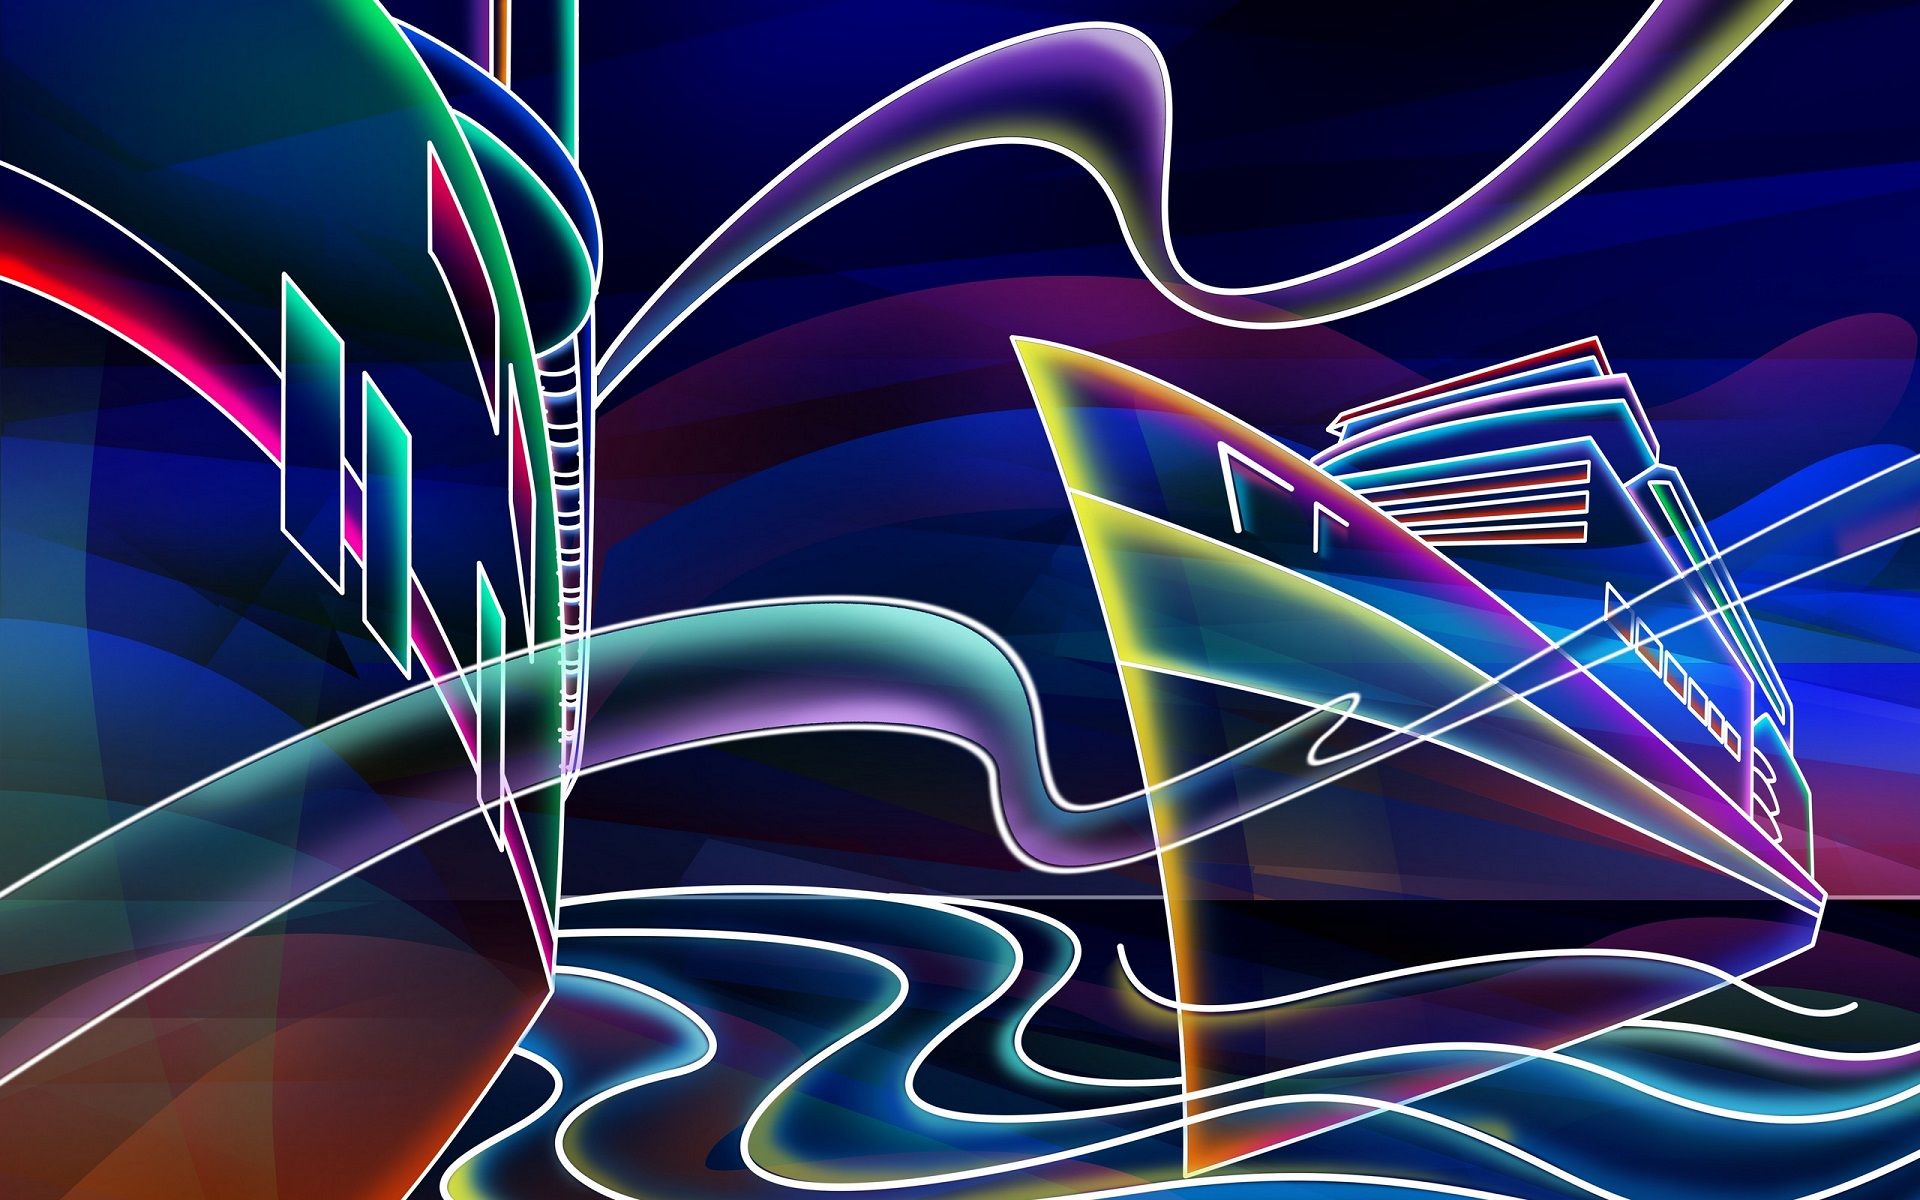 Neon wallpaper 15 awesome Collection 1920x1200